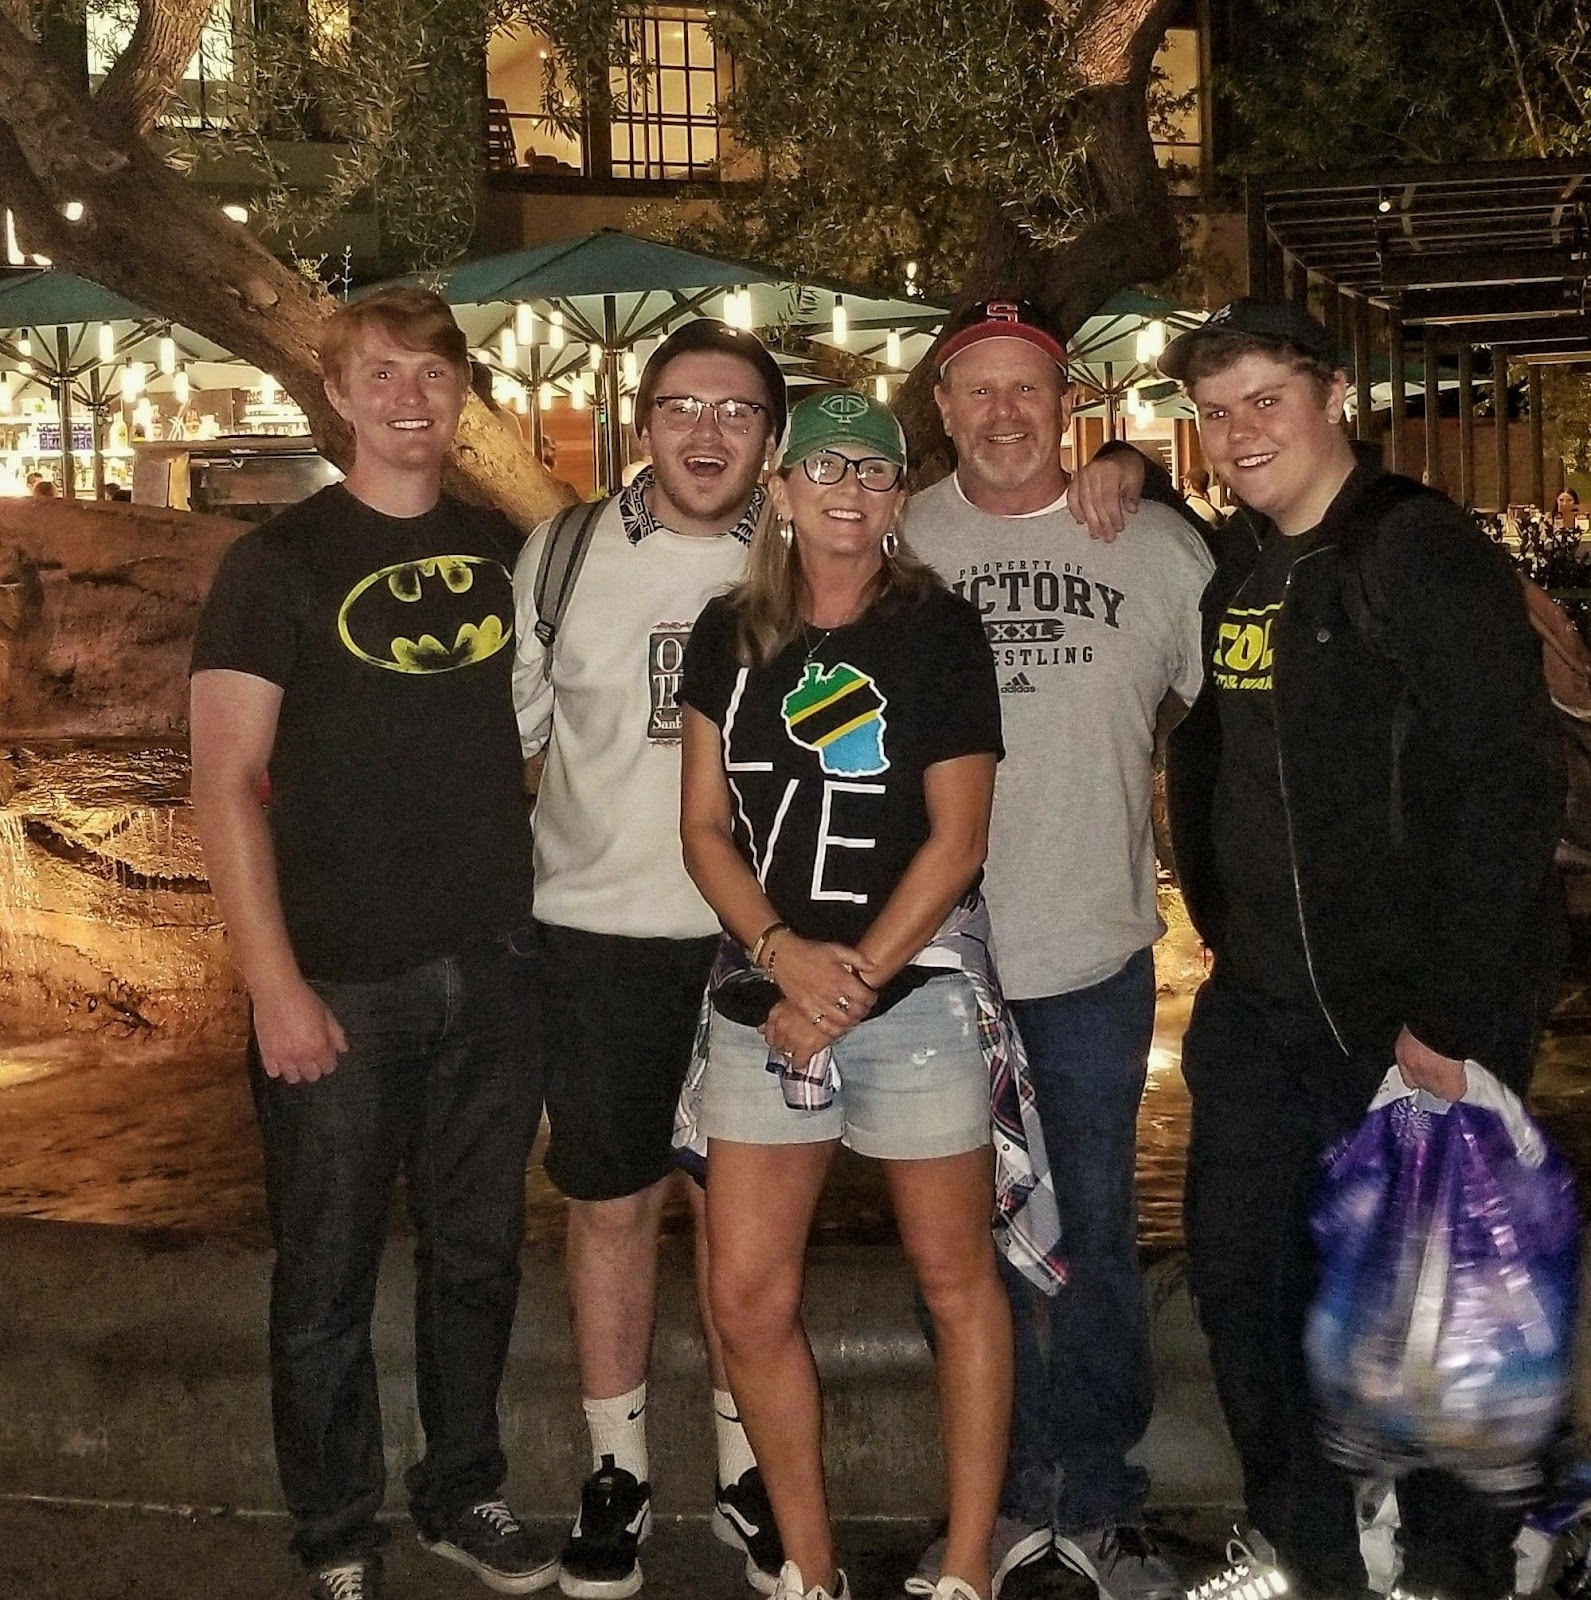 Family Picture at Disneyland